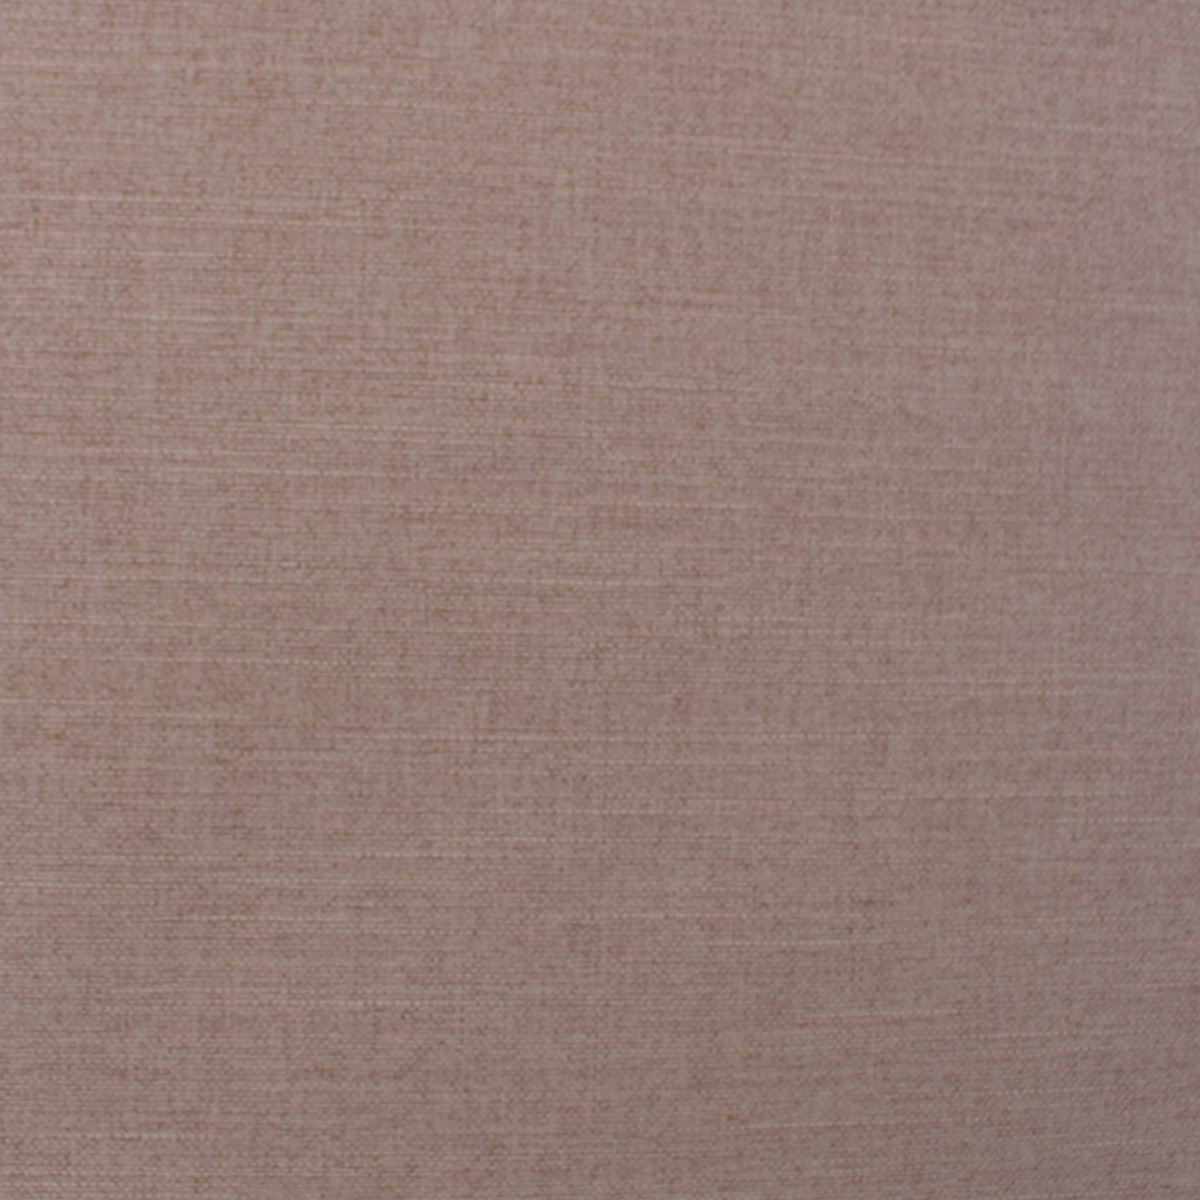 Topaz Plain Natural Beige Linen Look Durable Curtain Cushion Upholstery Fabric